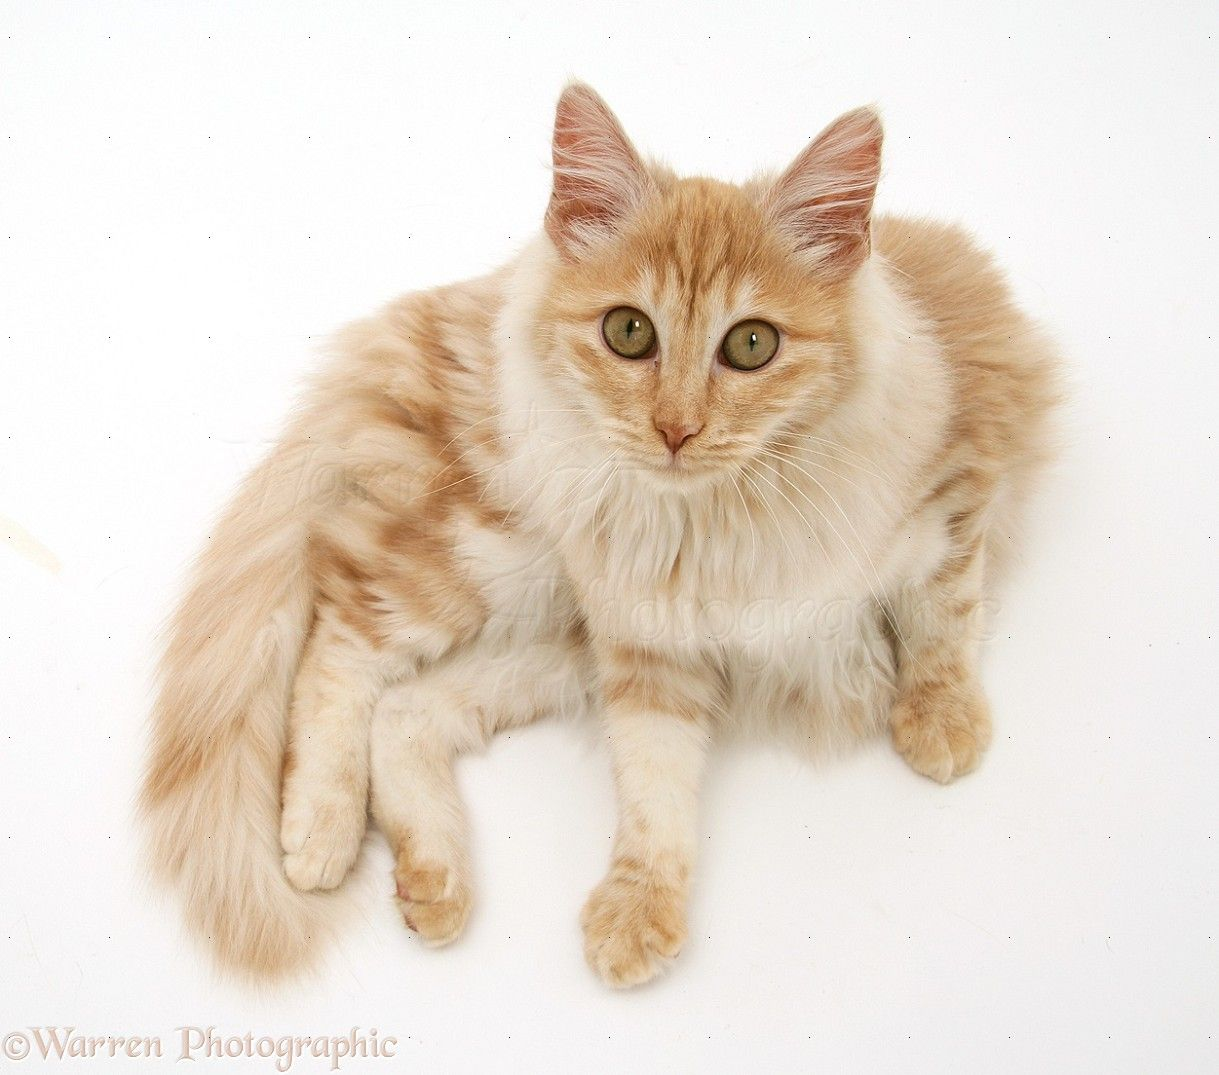 Turkish Angora Cat is a breed of domestic cat Turkish Angoras are